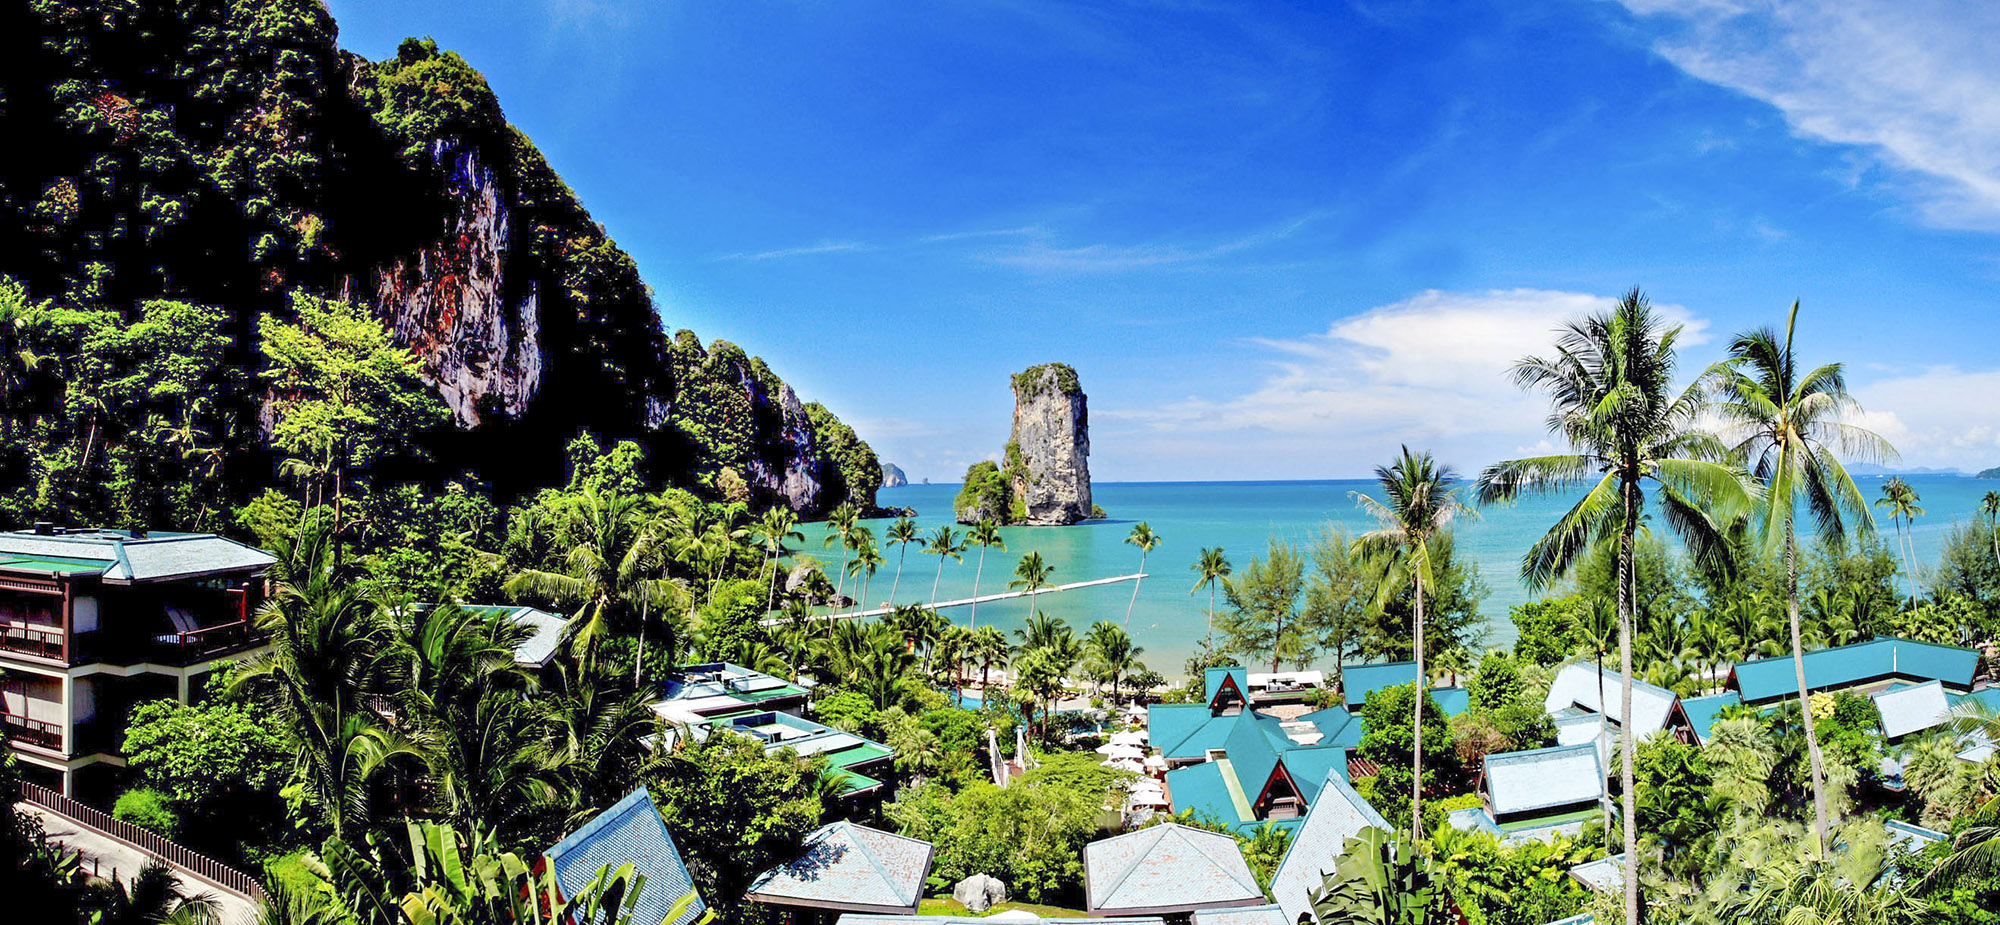 Pattaya Elephant Village Booking with Lower Rate